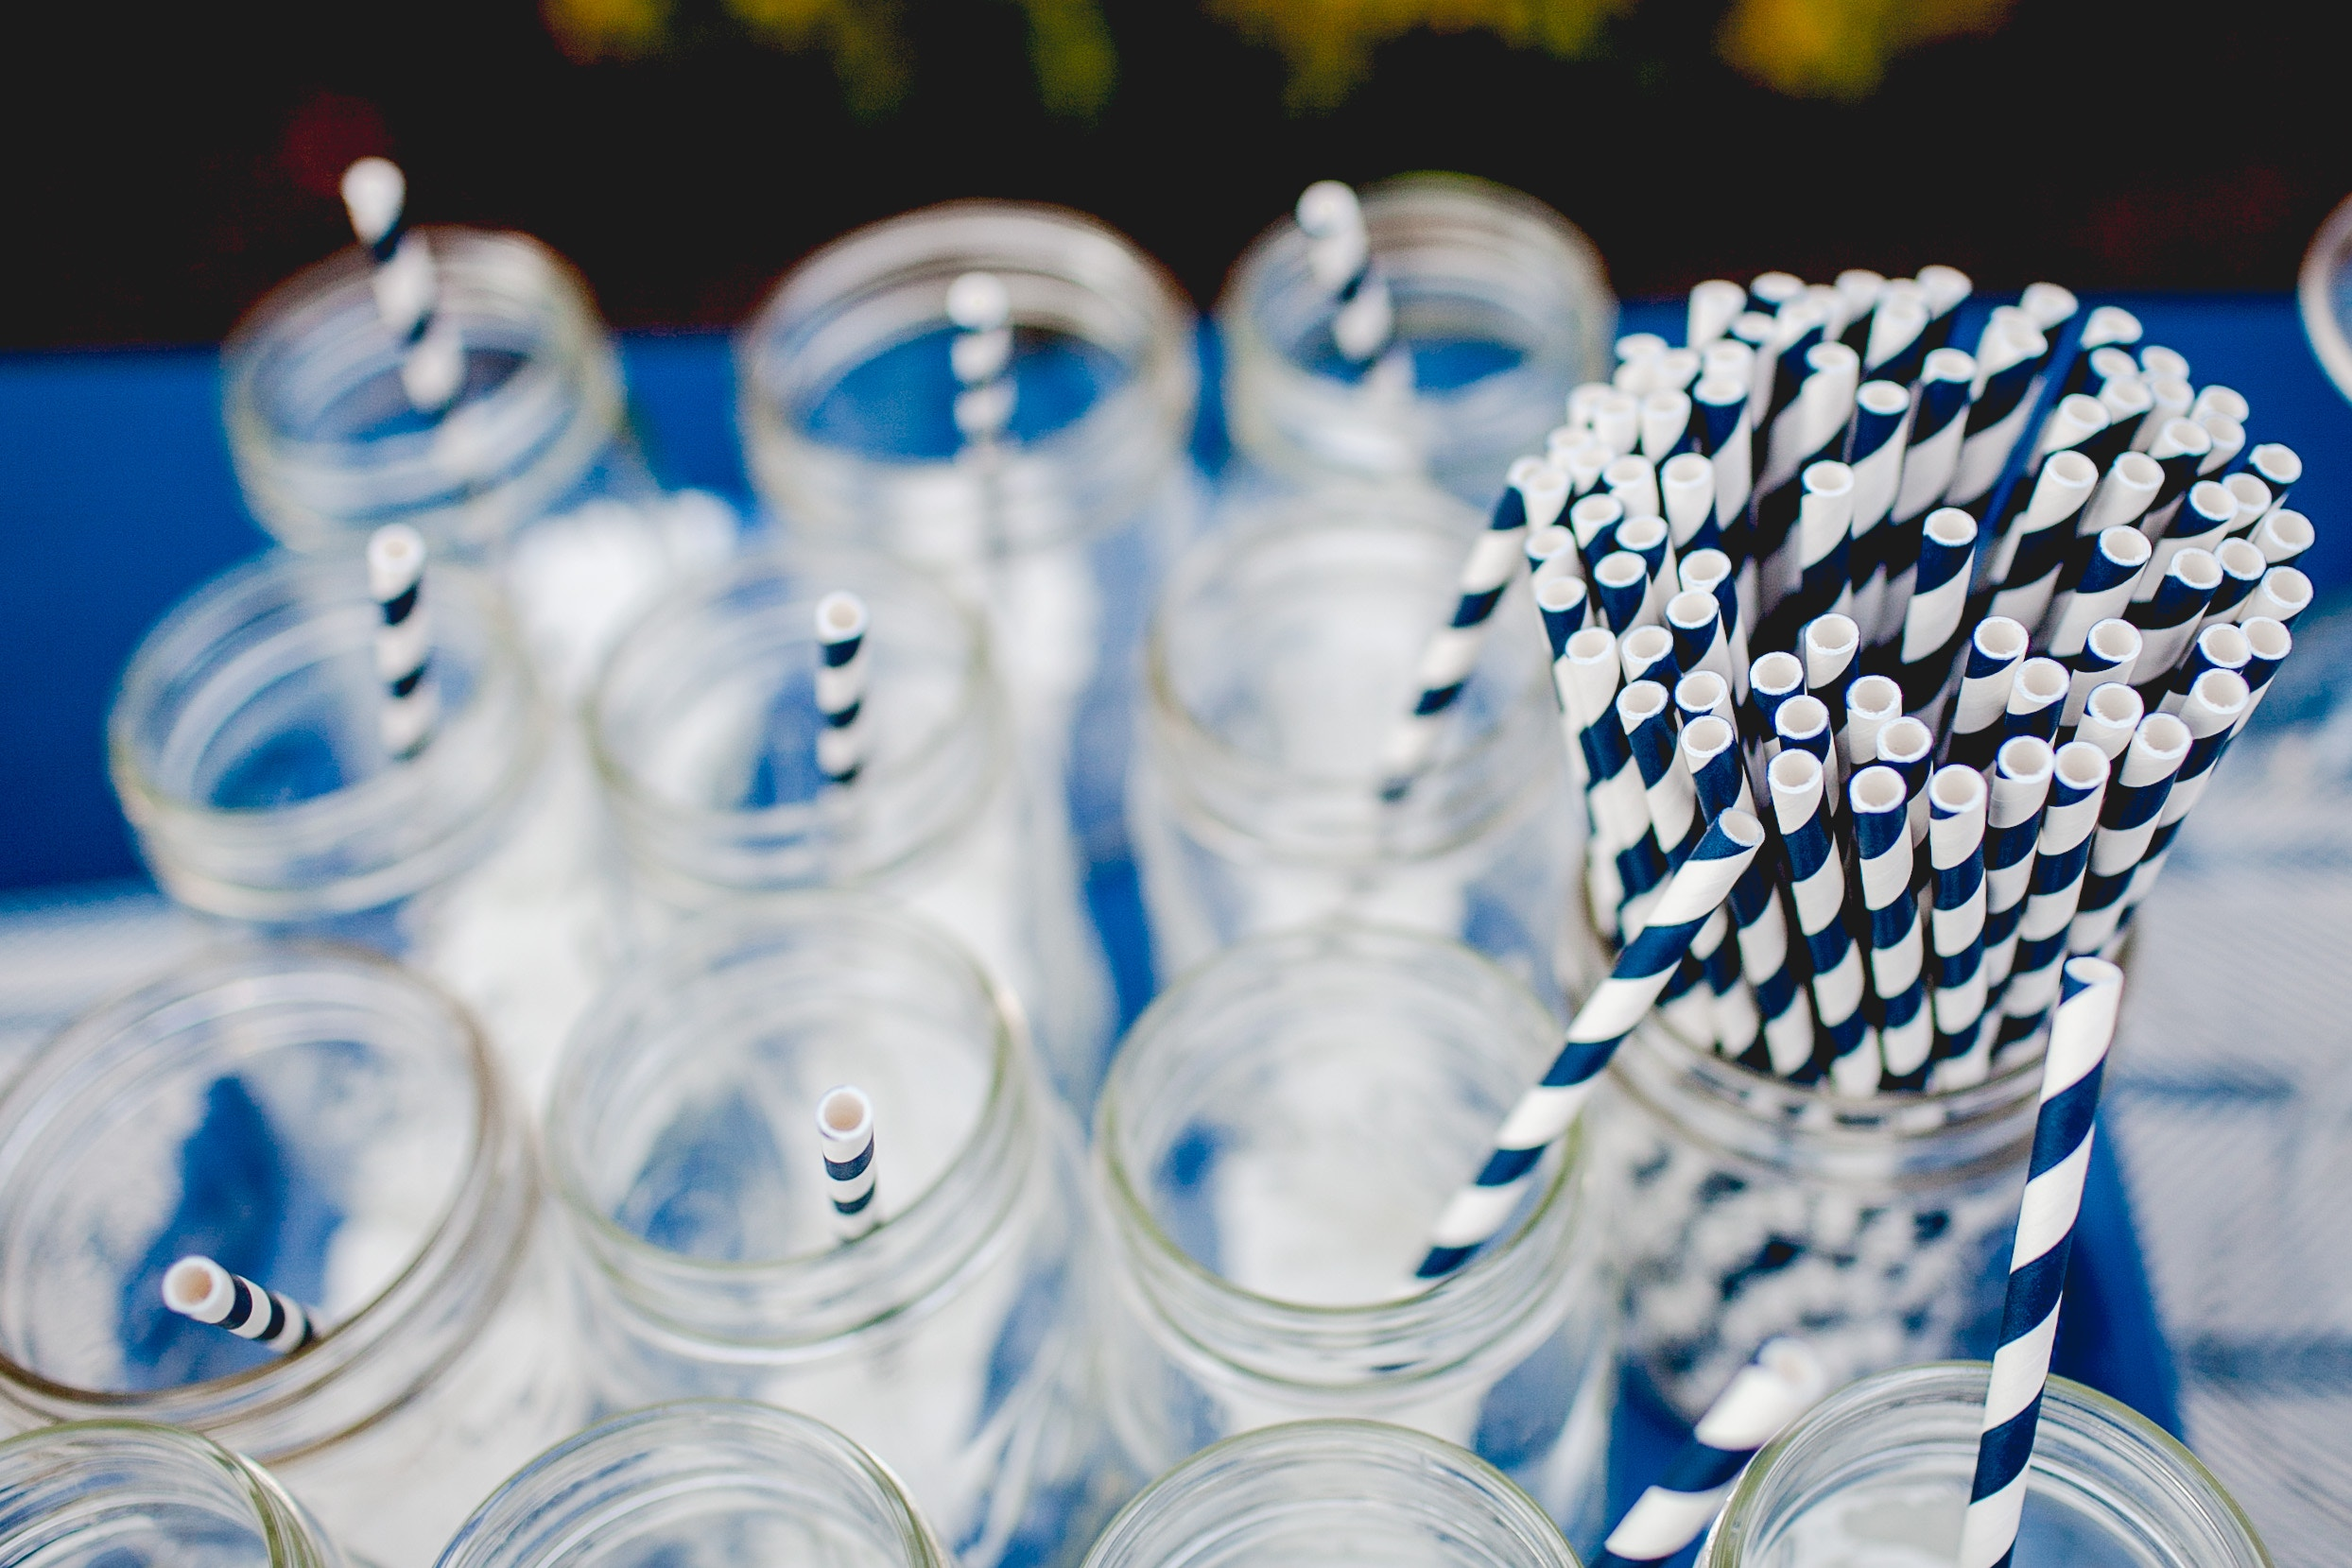 a photo of jars filled with paper party straws